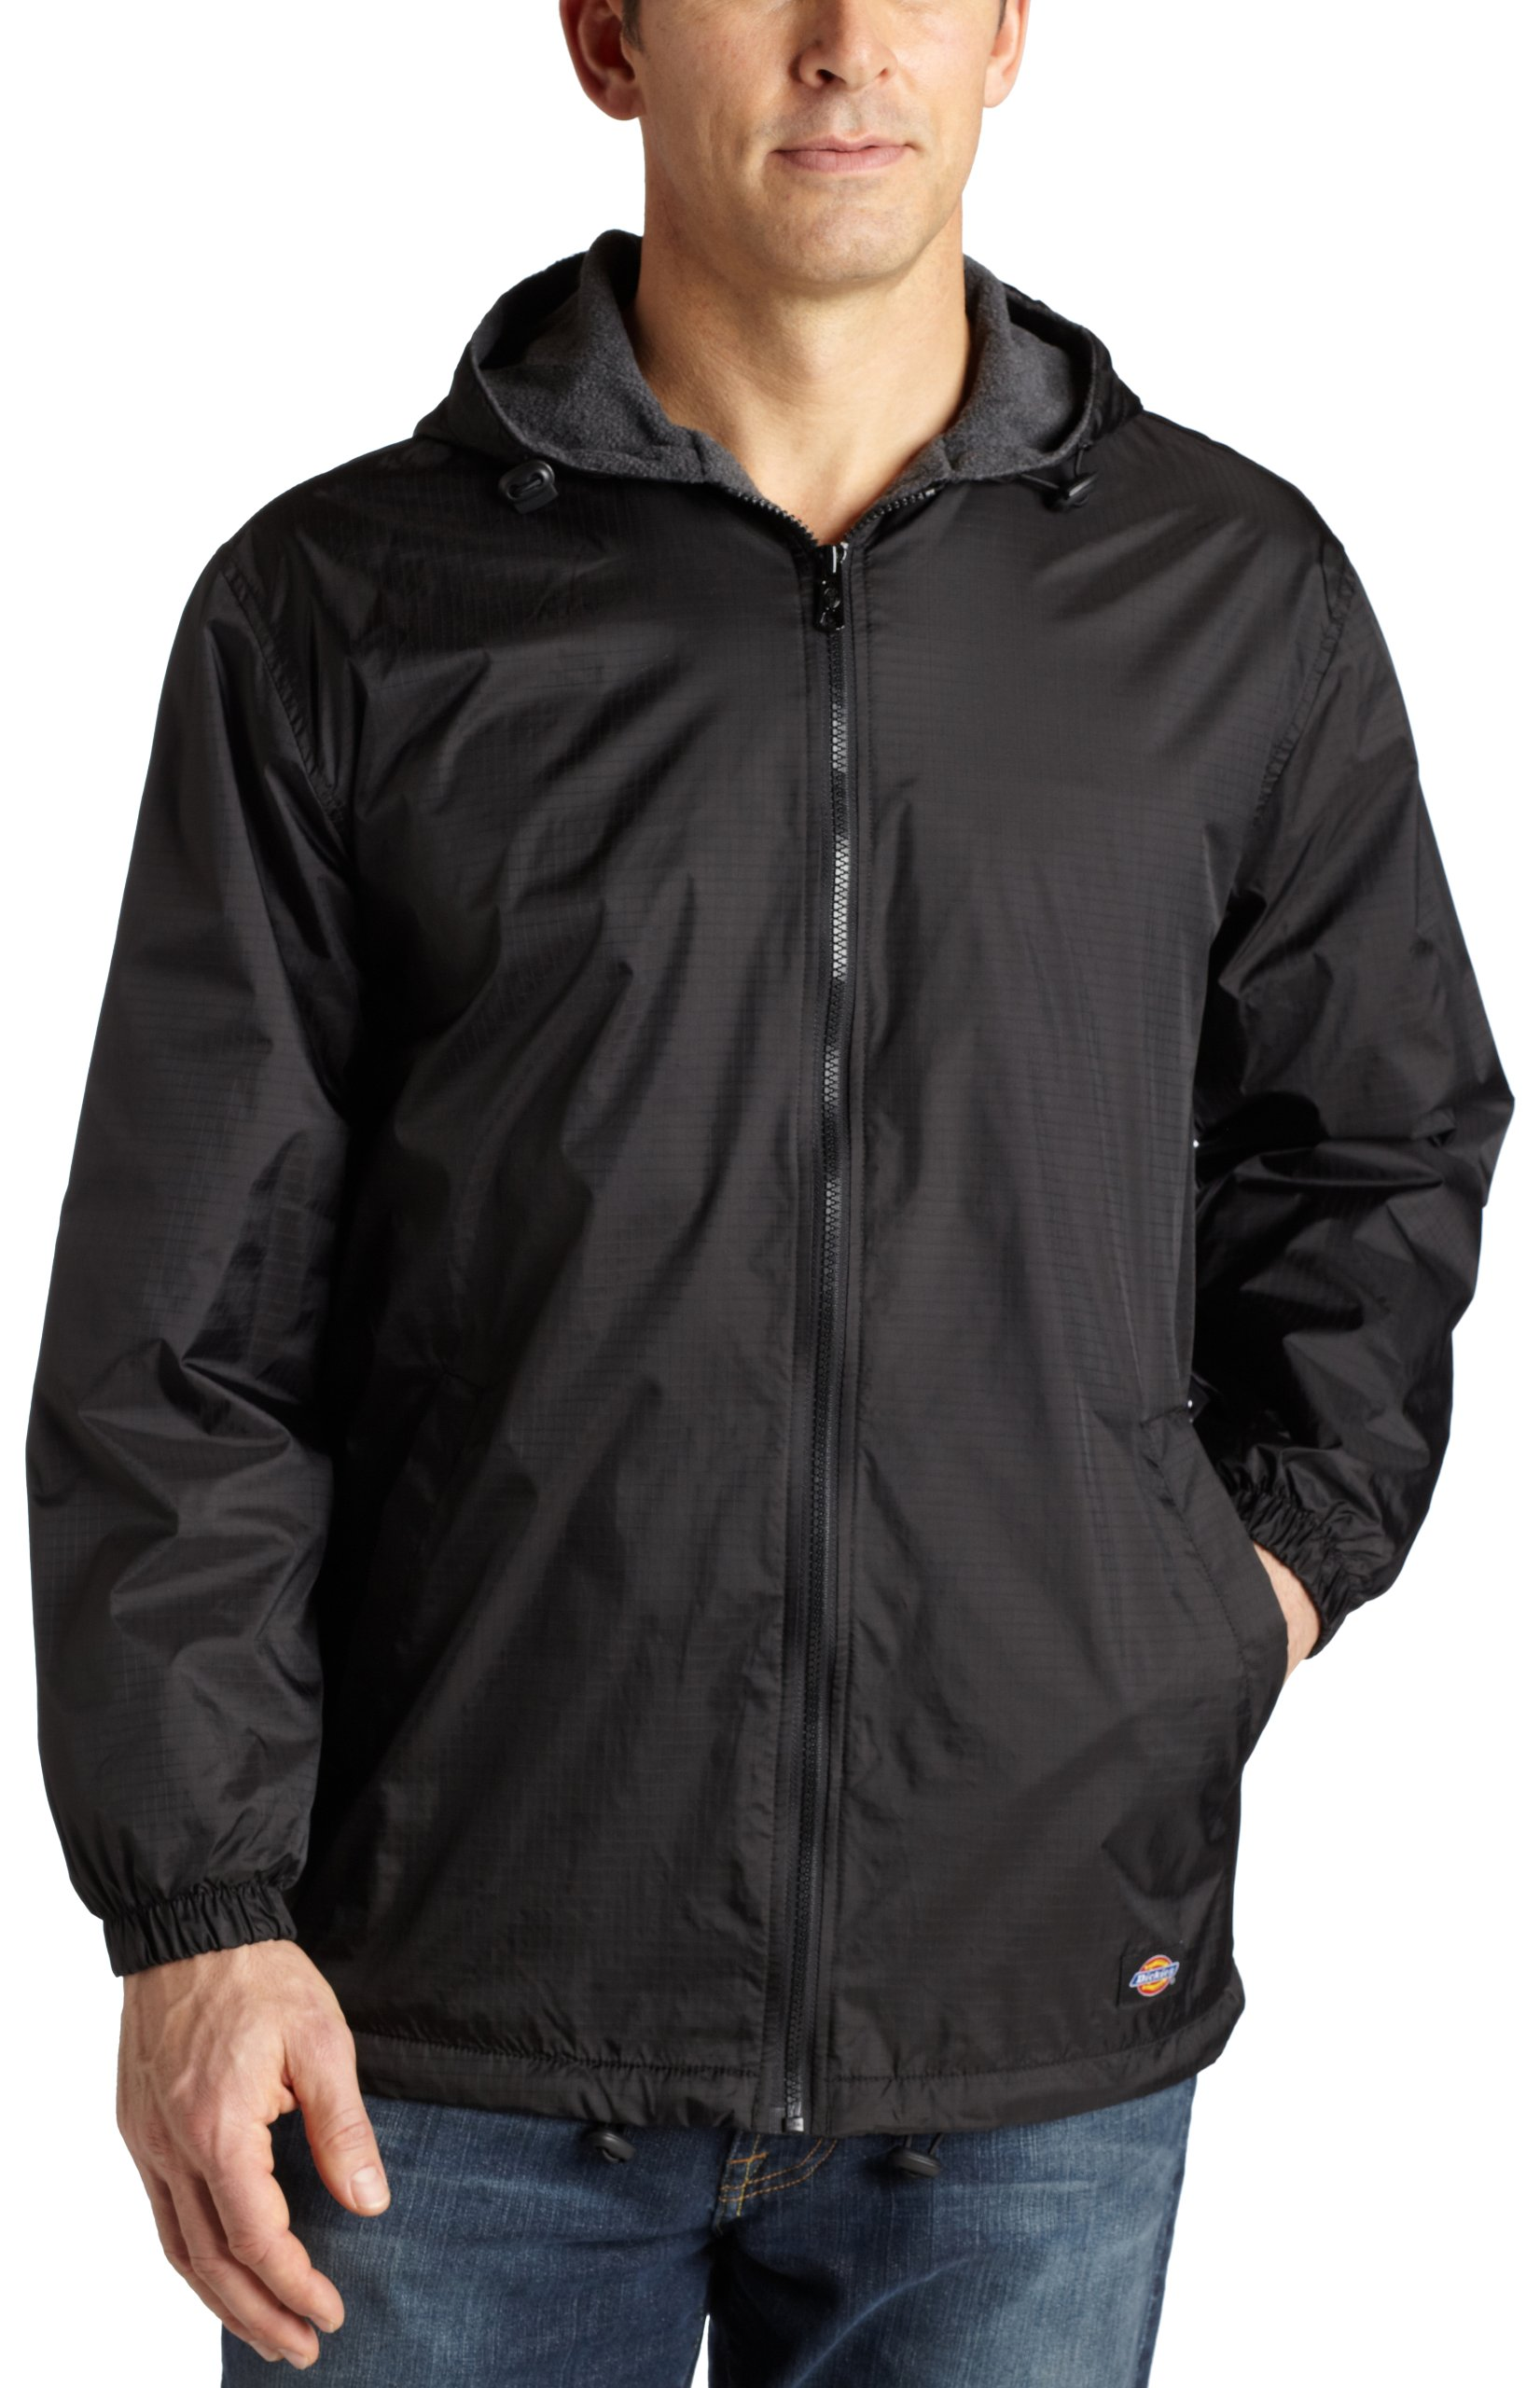 Dickies Men's Fleece Lined Hooded Jacket, Black, 4XL by dickies